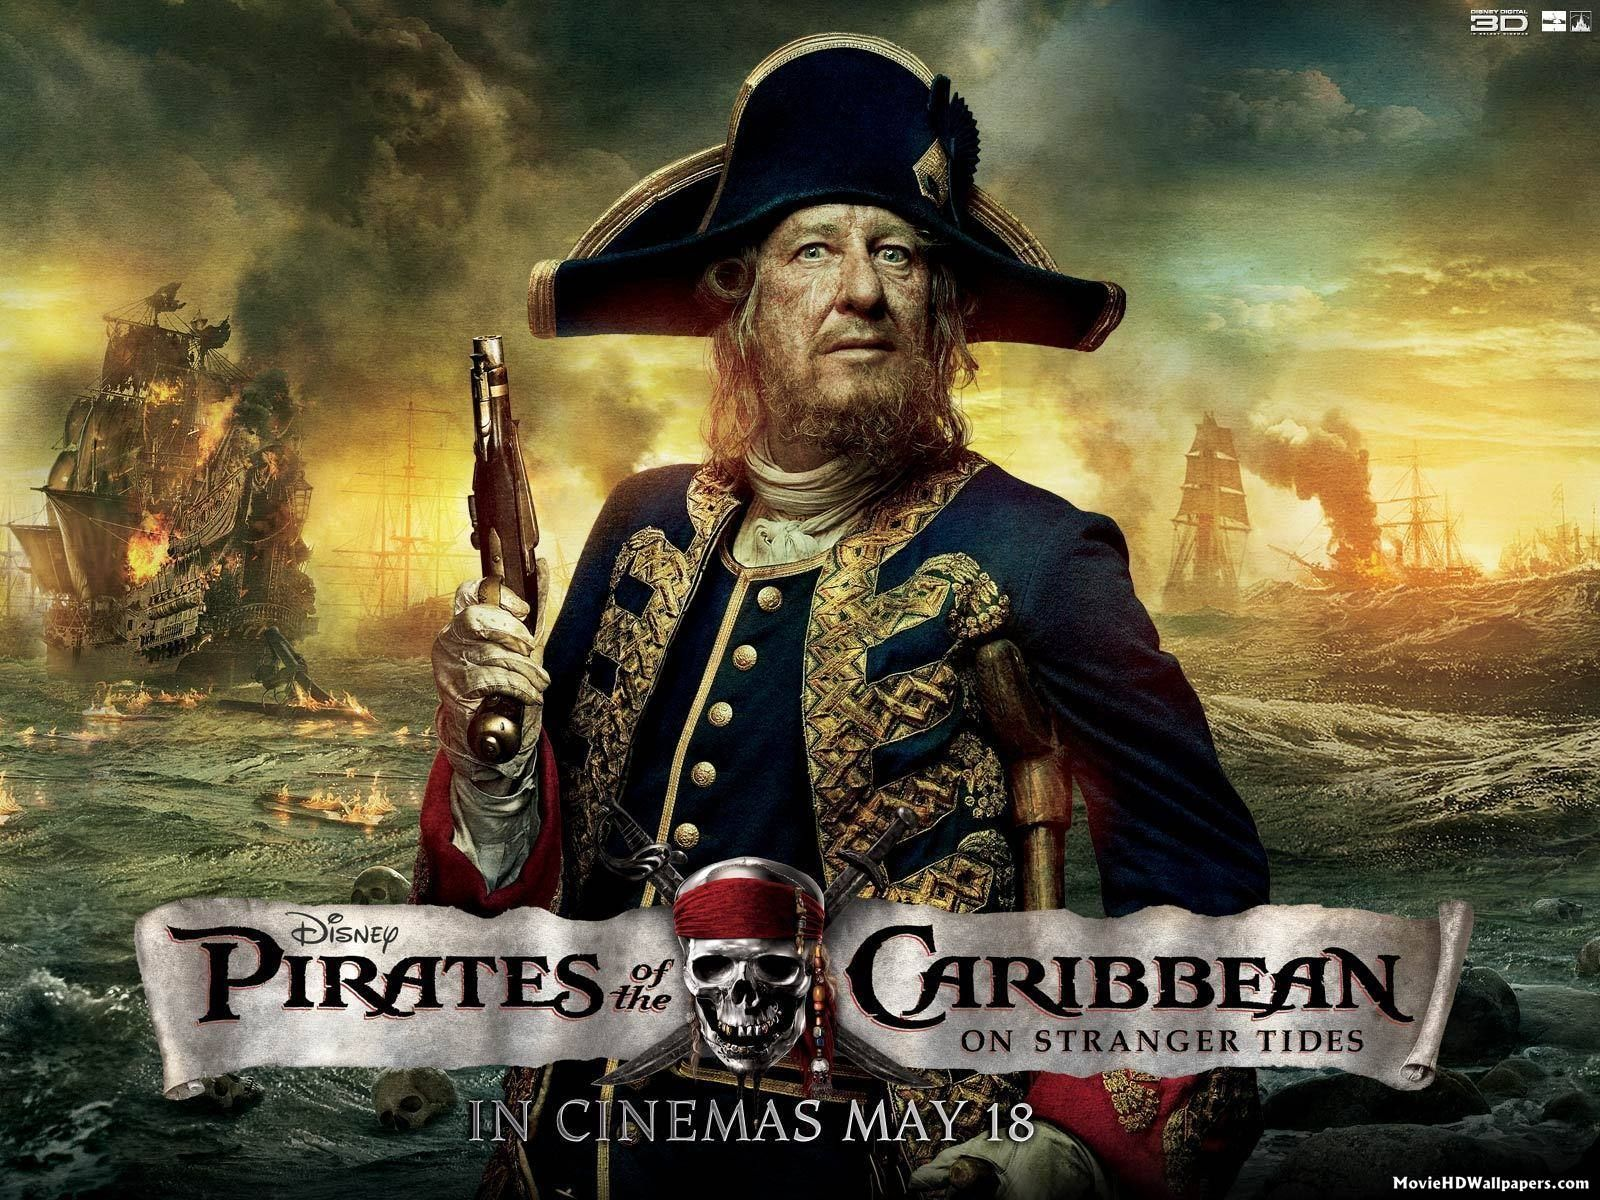 Philip pirates of the caribbean hd wallpapers backgrounds art pirates of the caribbean on stranger tides movie geoffrey rush captain hector barbossa hd wallpaper desktop background voltagebd Images